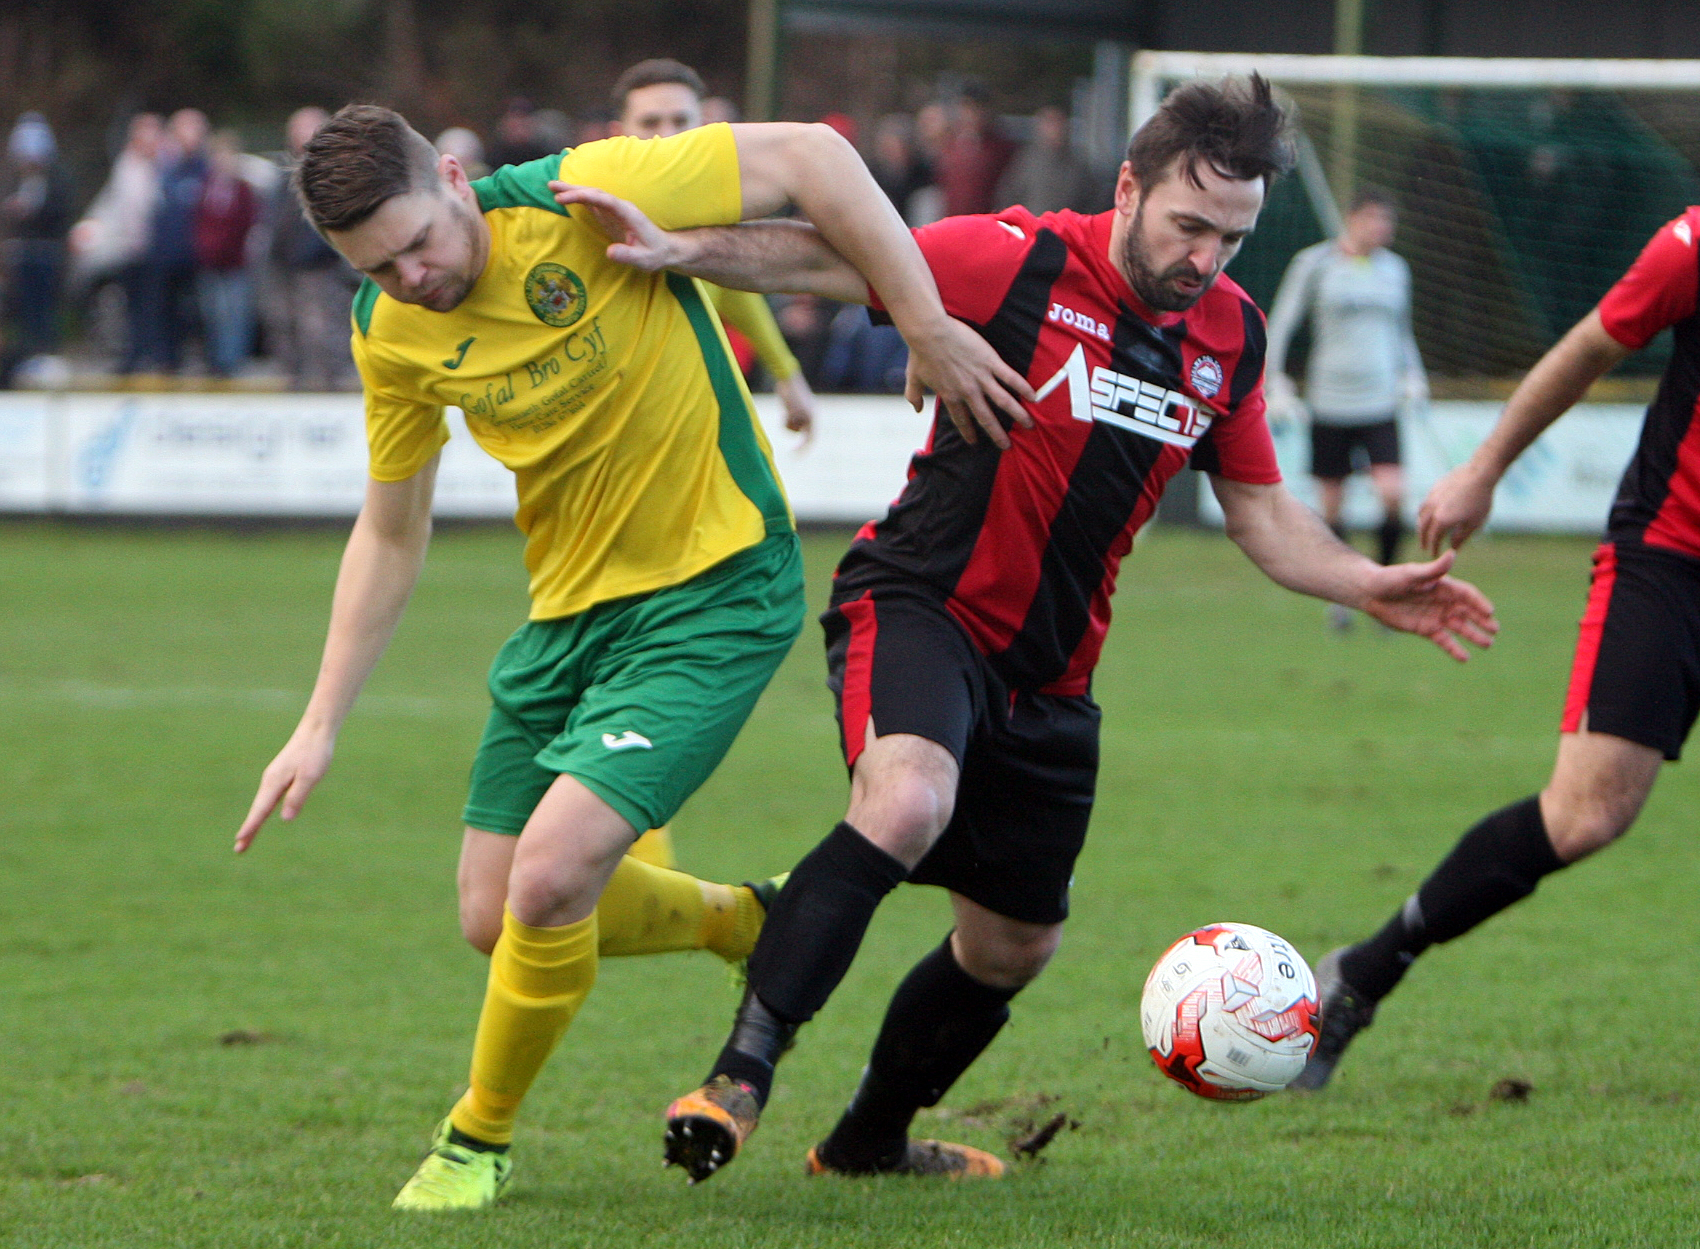 Jamie Breese was on target for Caernarfon Town